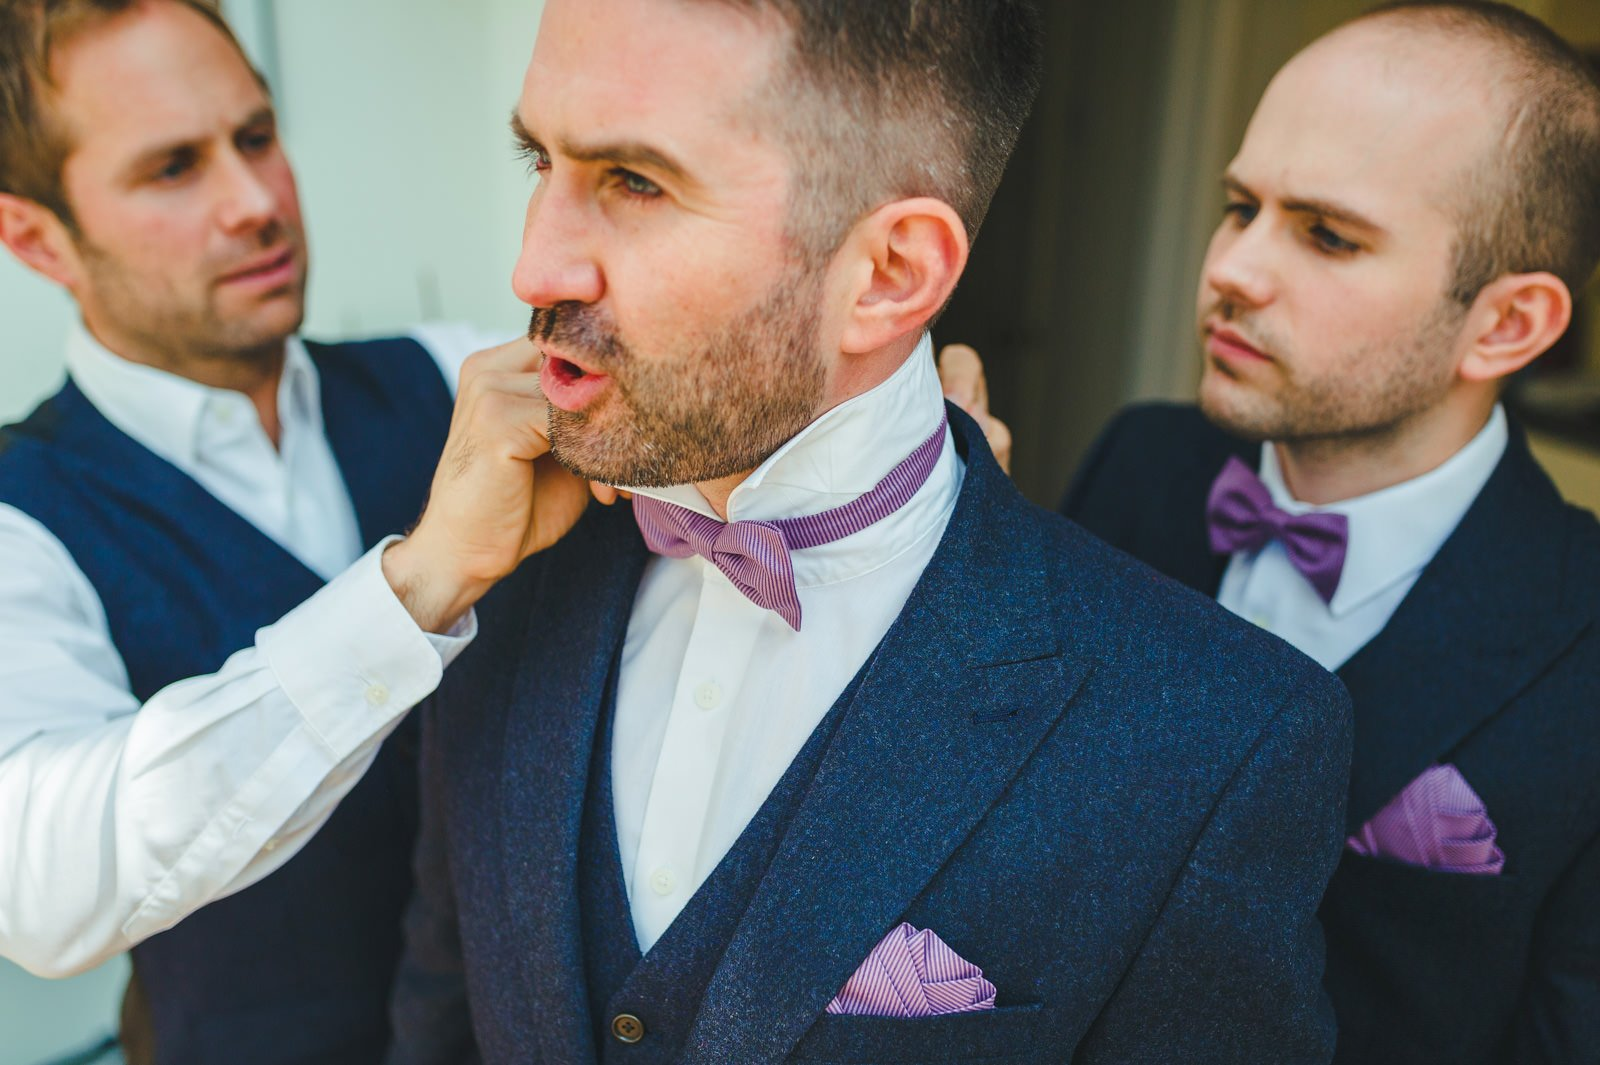 millers of netley wedding 4 - Millers Of Netley wedding, Dorrington, Shrewsbury | Emma + Ben